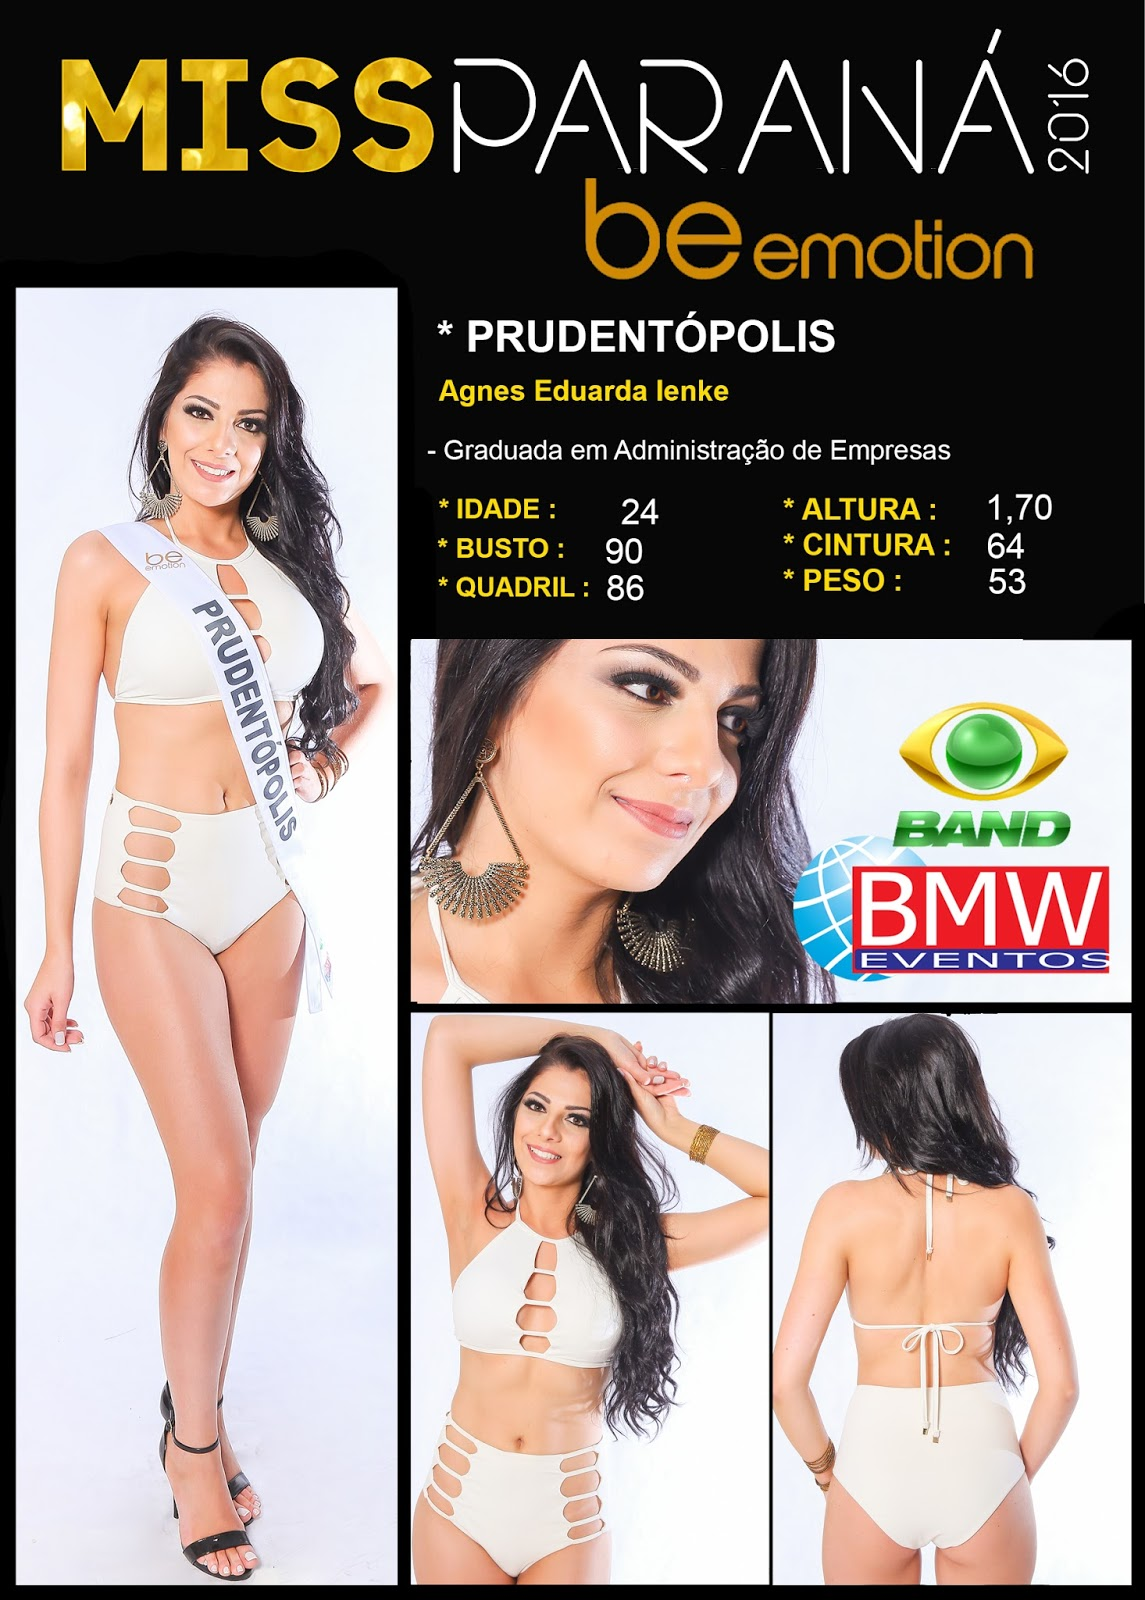 Miss universo 2013 completo online dating 1